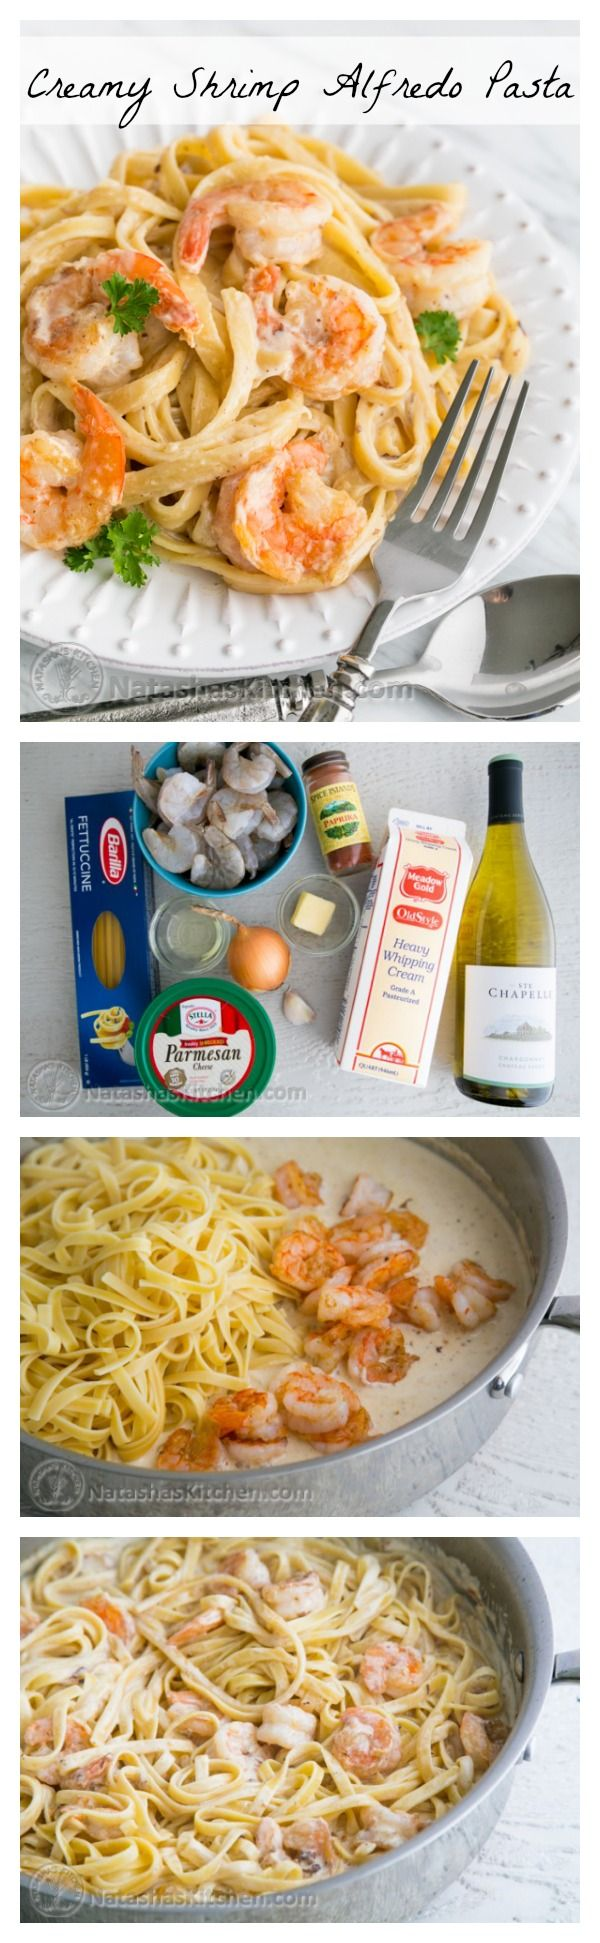 This recipe reminds me of my favorite dish at Olive Garden; seafood alfredo. The creamy pasta studded with large, tender shrimp is the ultimate comfort food! @natashaskitchen